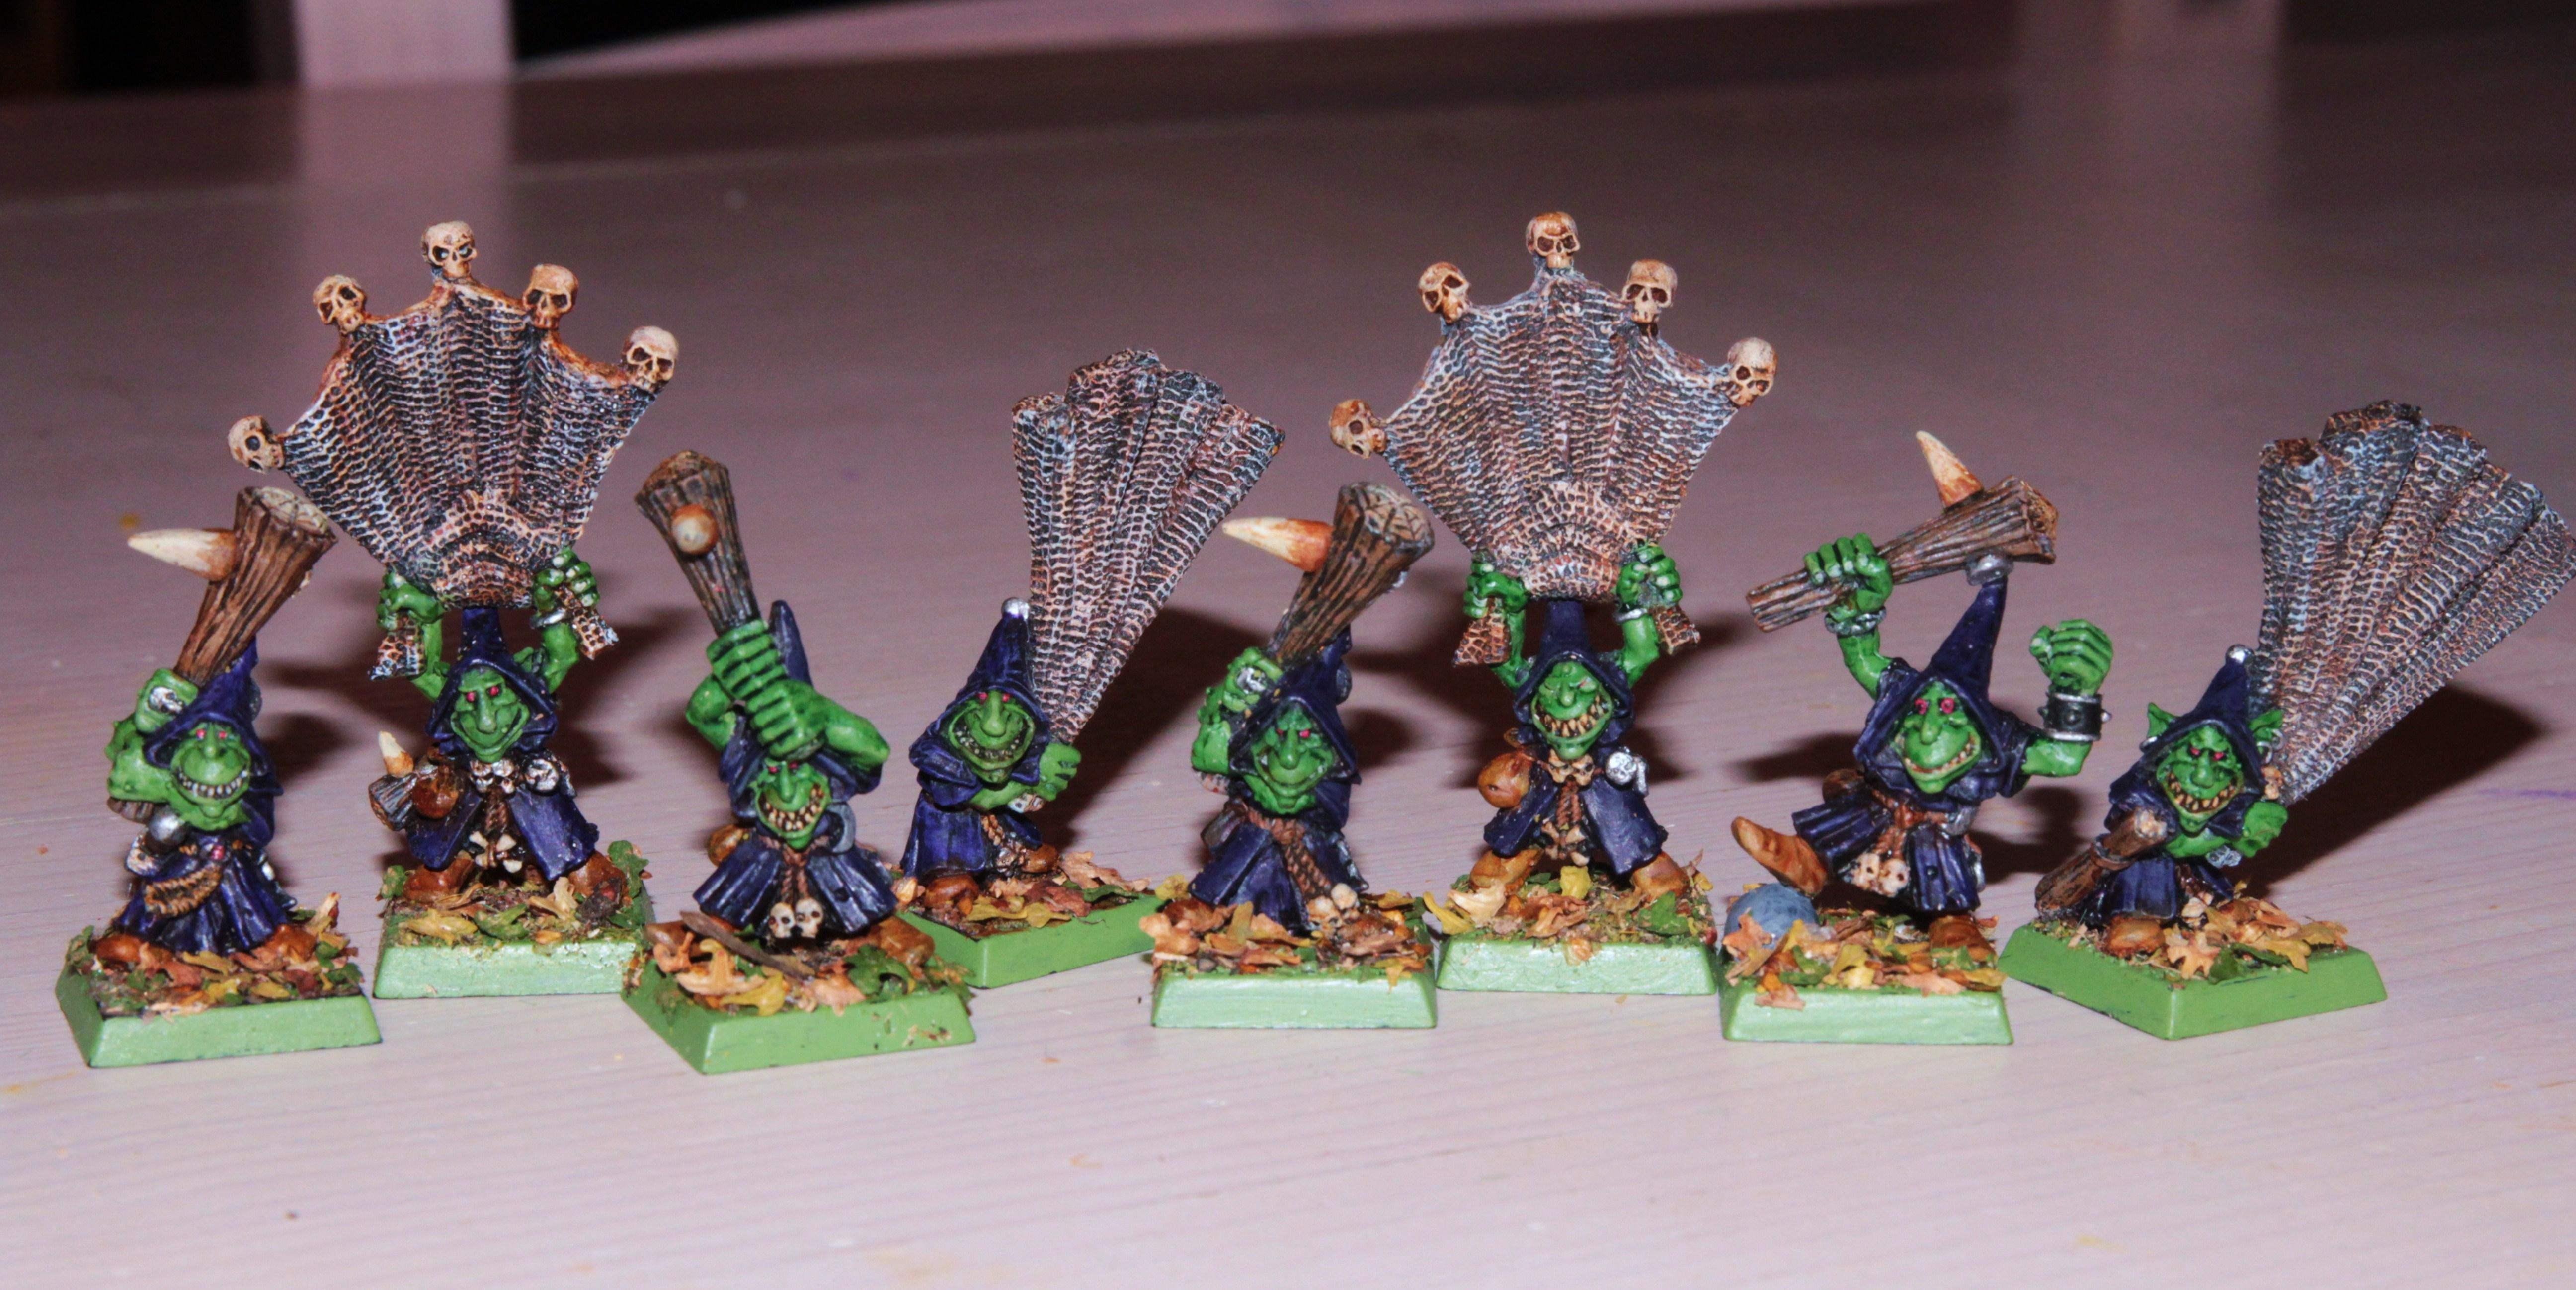 Clubbers, Netters, Night Goblins, Oldhammer, Warhammer Fantasy, Wfb